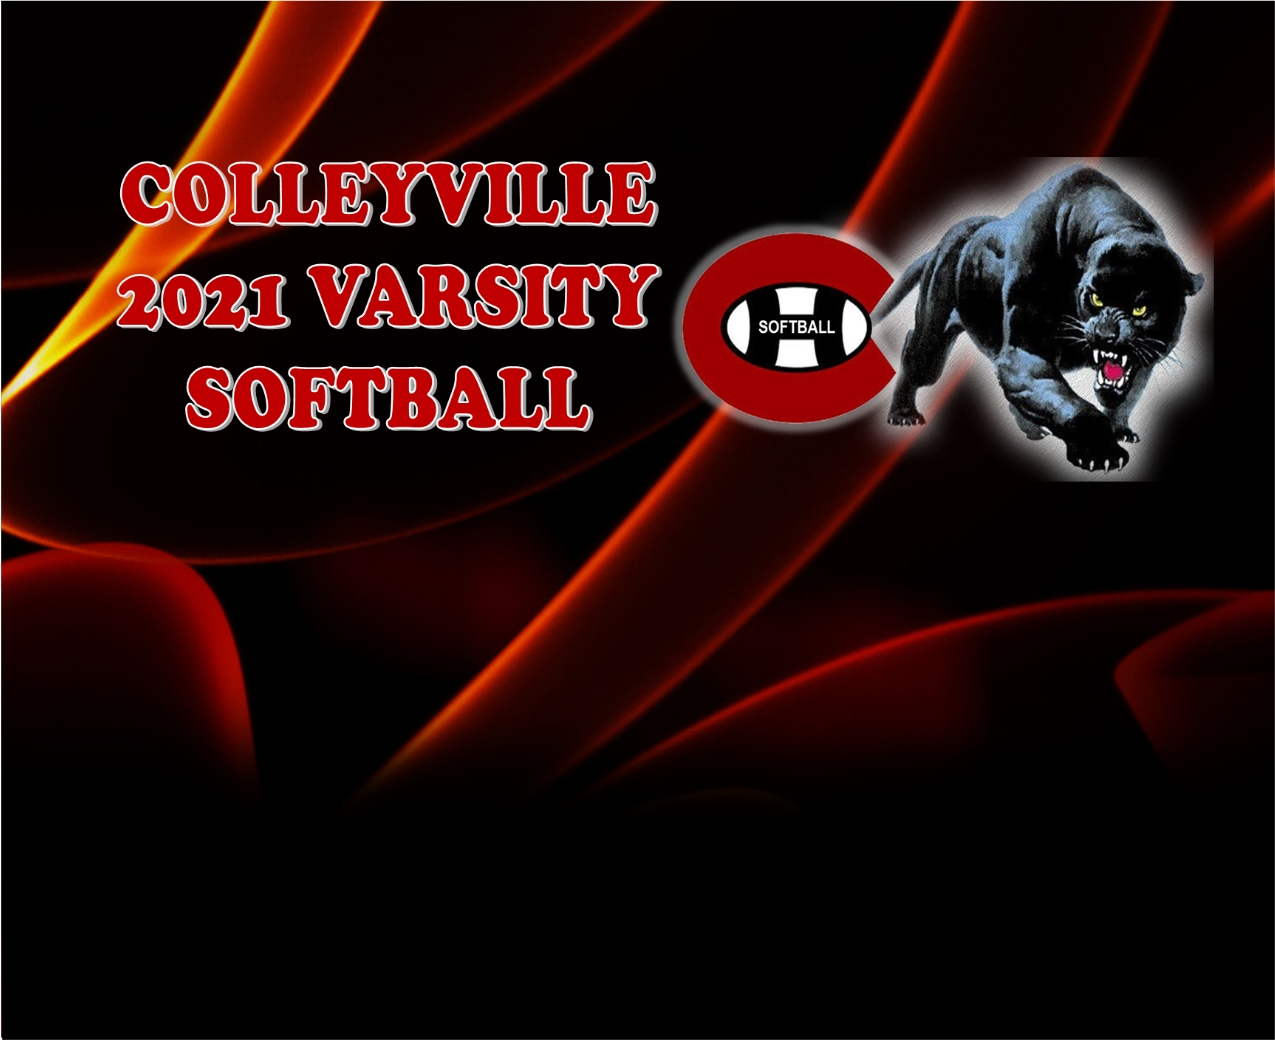 GCISD Softball: Colleyville Panthers Go Ahead in Sixth Inning for Win Over Northwest Texans 6-4